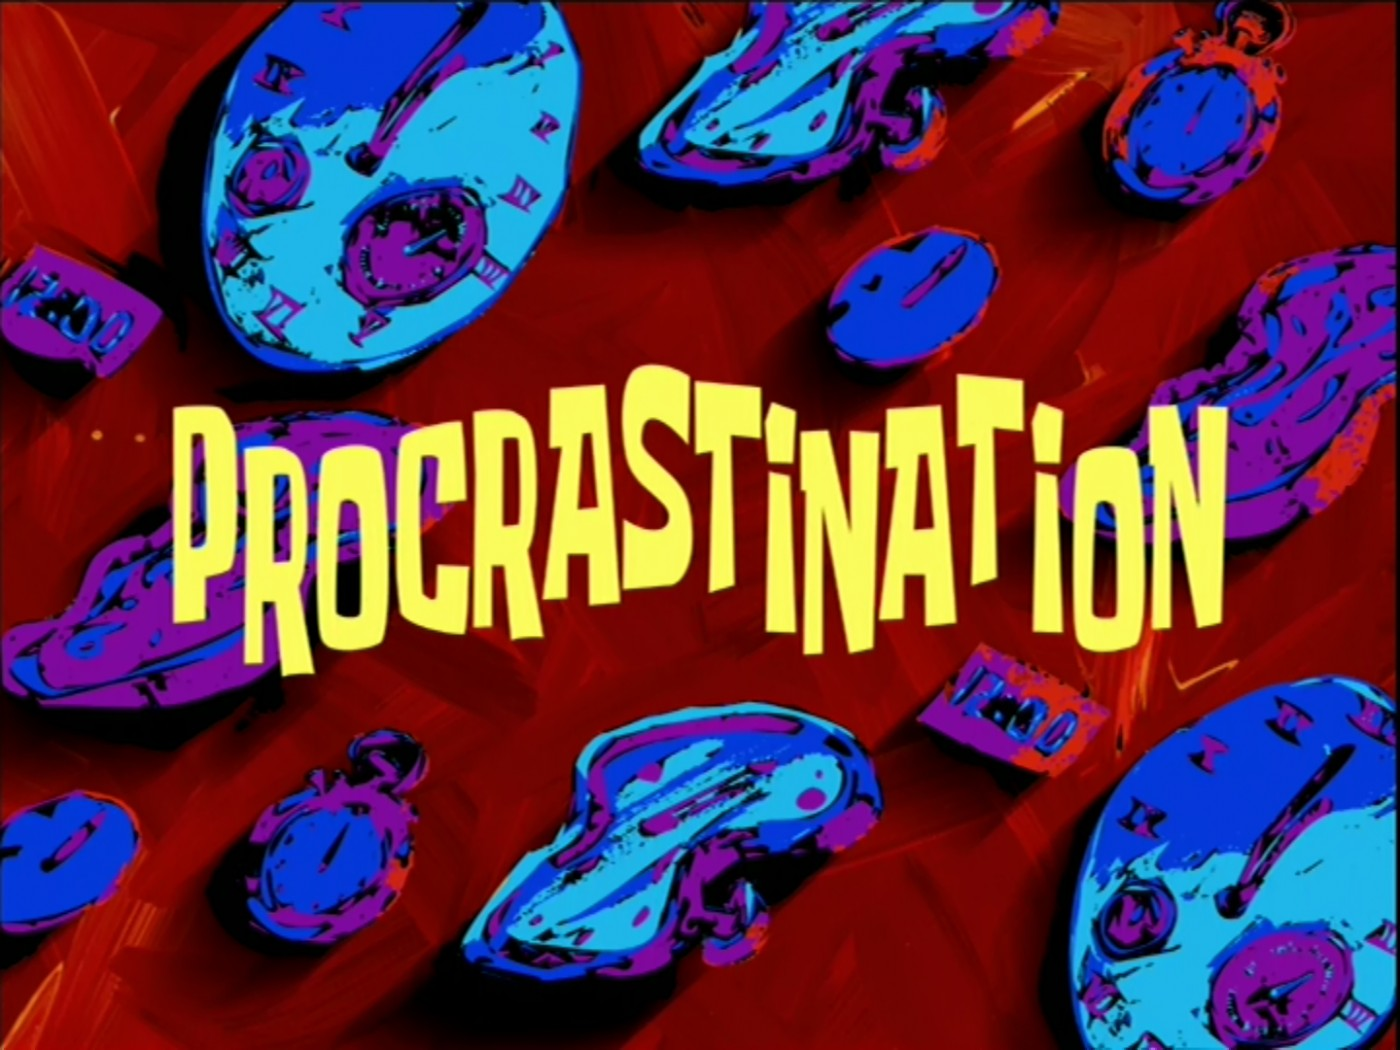 009 Procrastinationtranscript Encyclopedia Spongebobia Fandom Spongebob Writing Essay The Latestcb201806220 Gif Font For Hours Meme Rap Surprising Deleted Scene House 1400